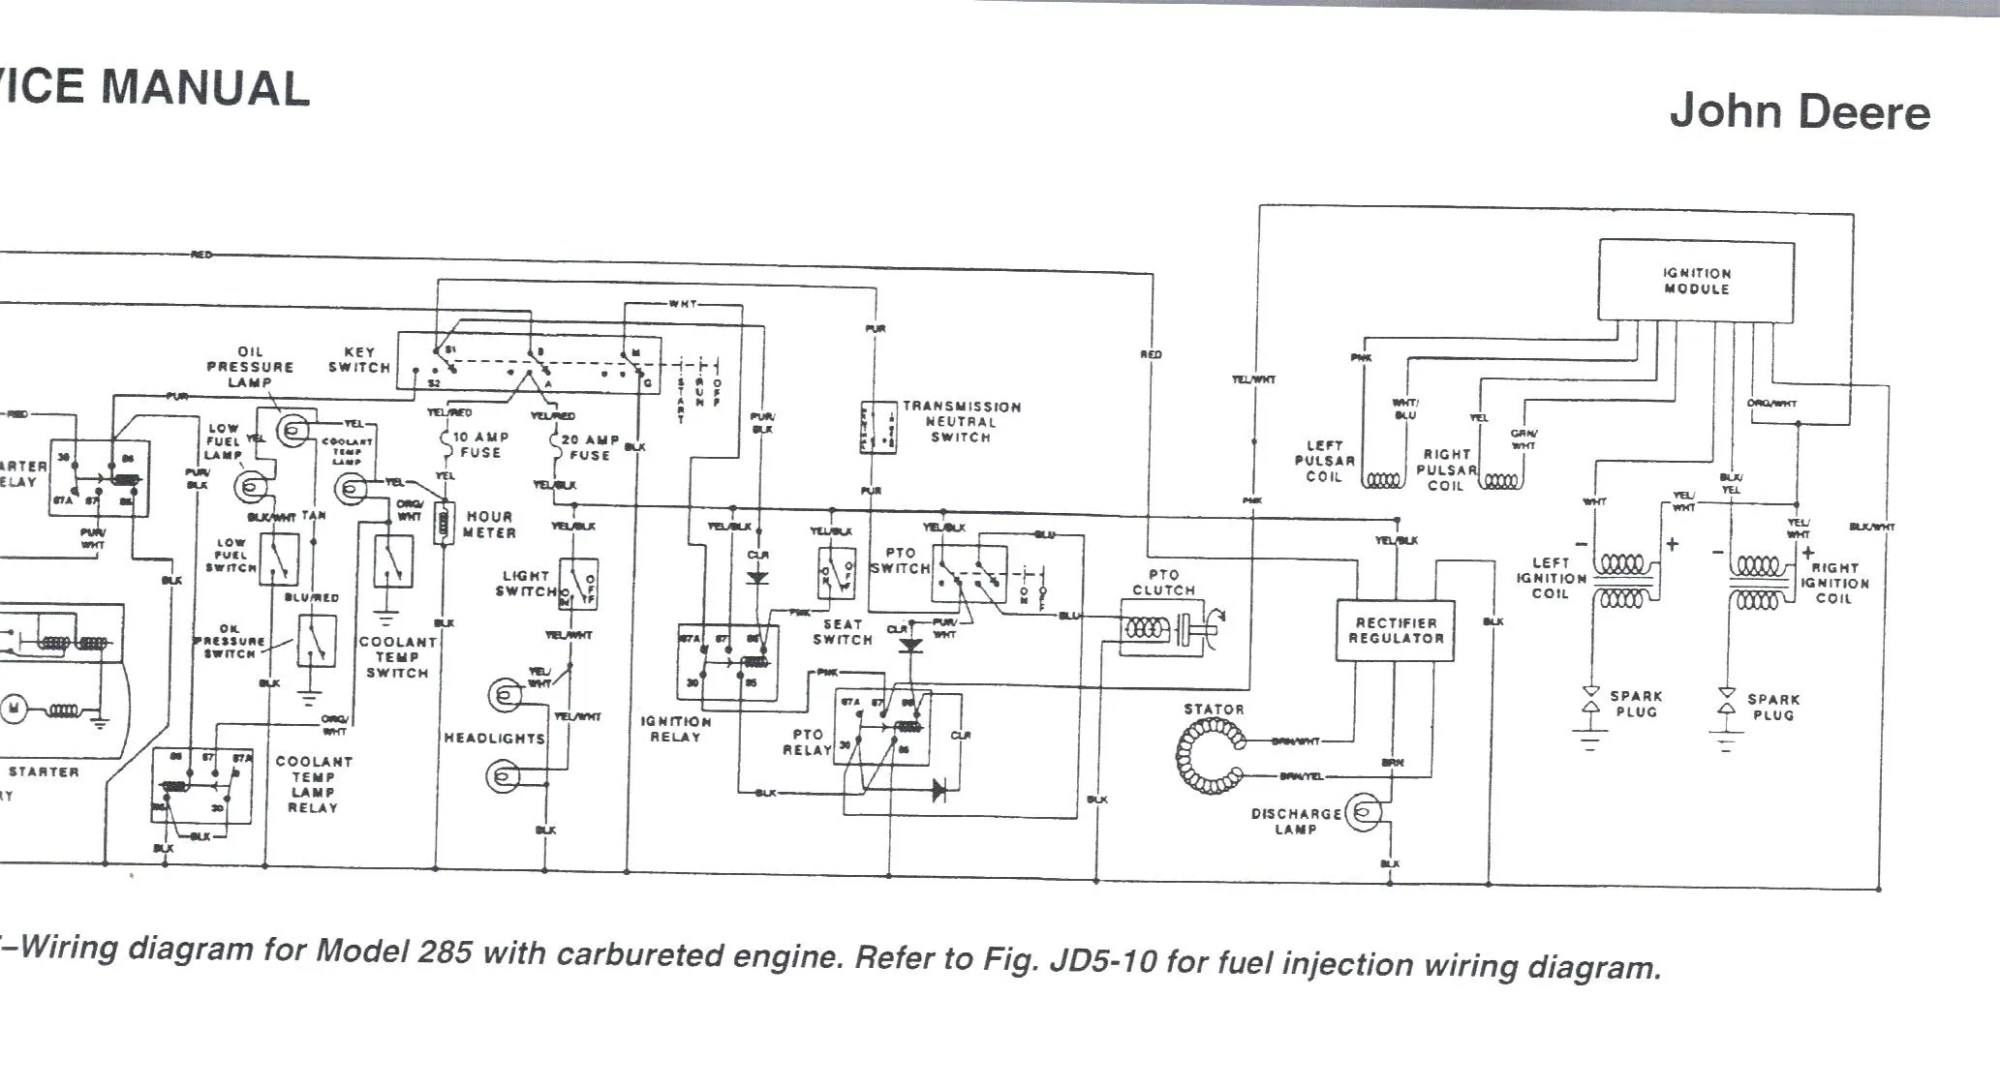 hight resolution of lx280 wiring diagram wiring diagram databasejohn deere wiring diagram lt155